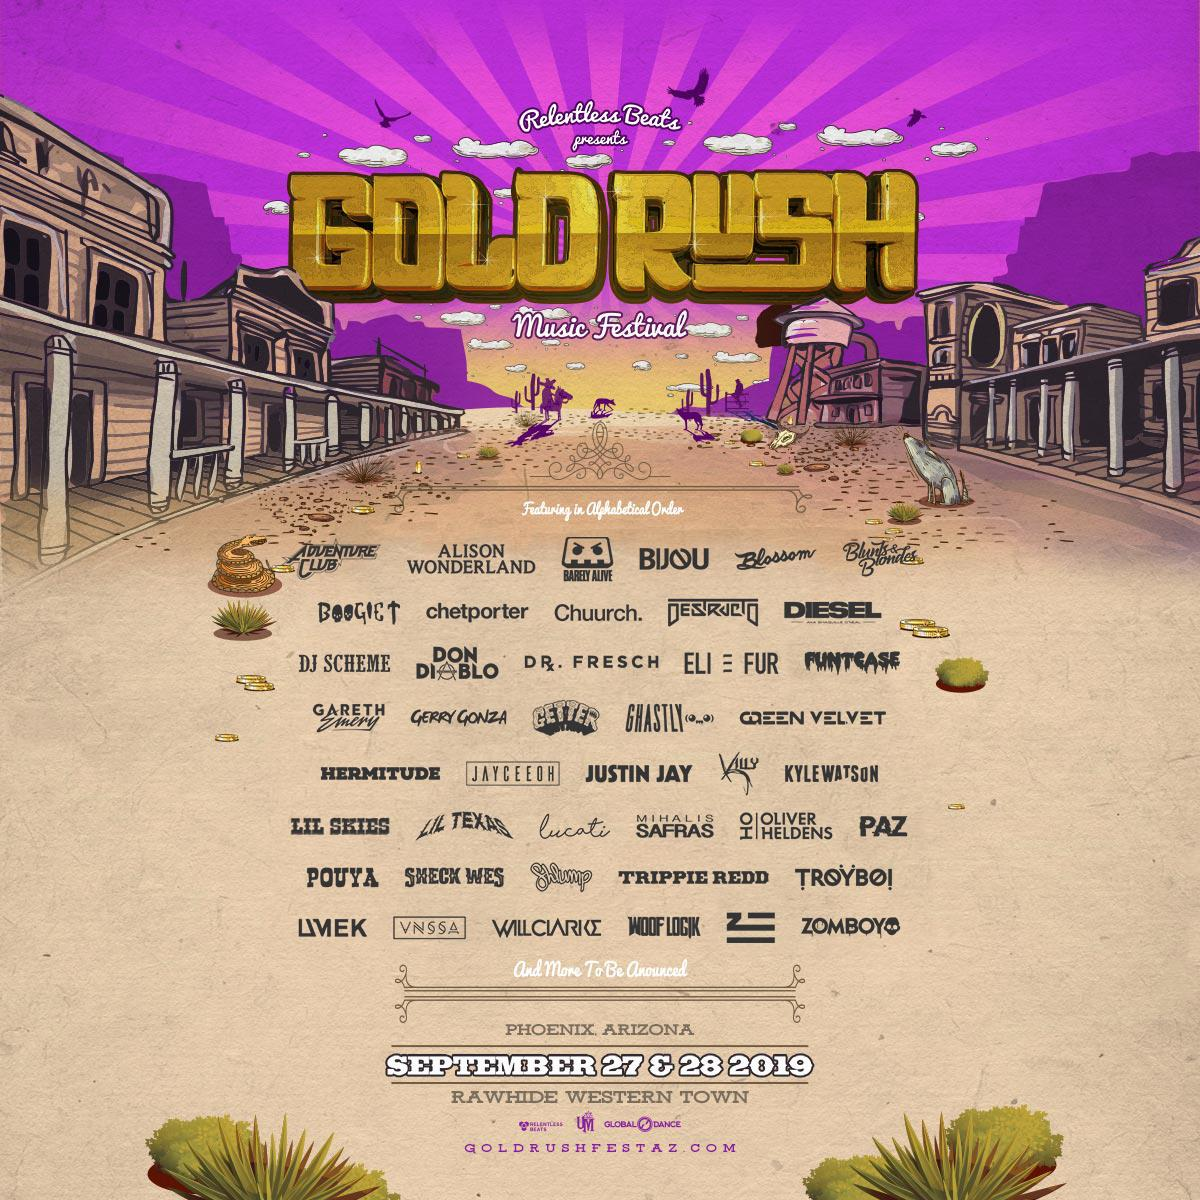 Buy Tickets to Goldrush 2019 in Chandler on Sep 27, 2019